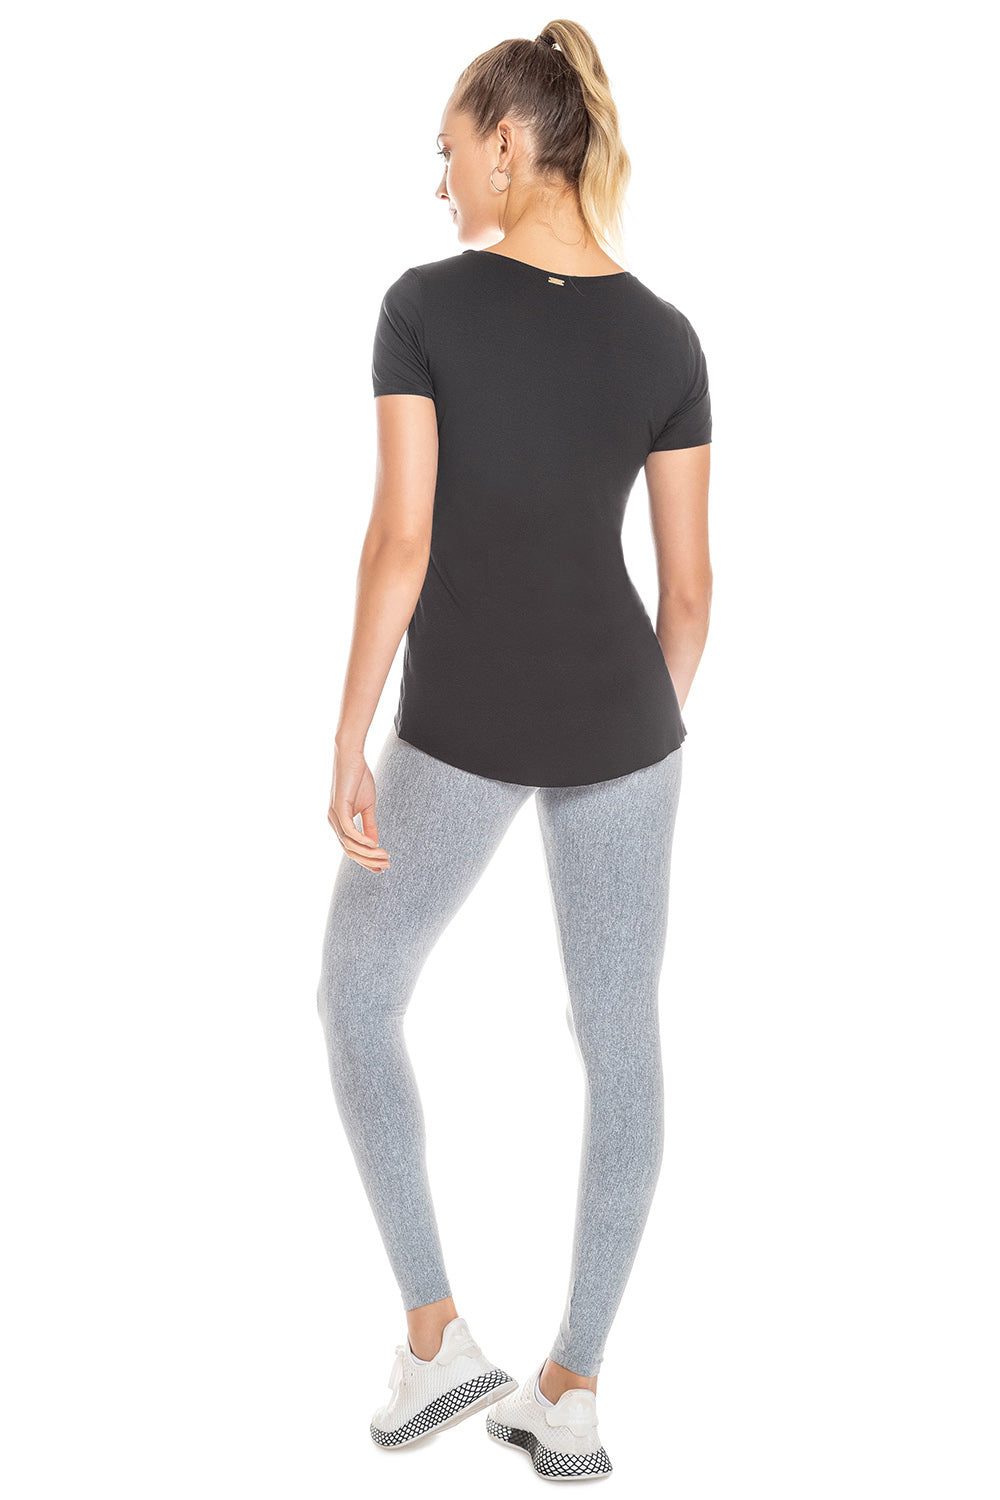 Sweat In Style Tee 2